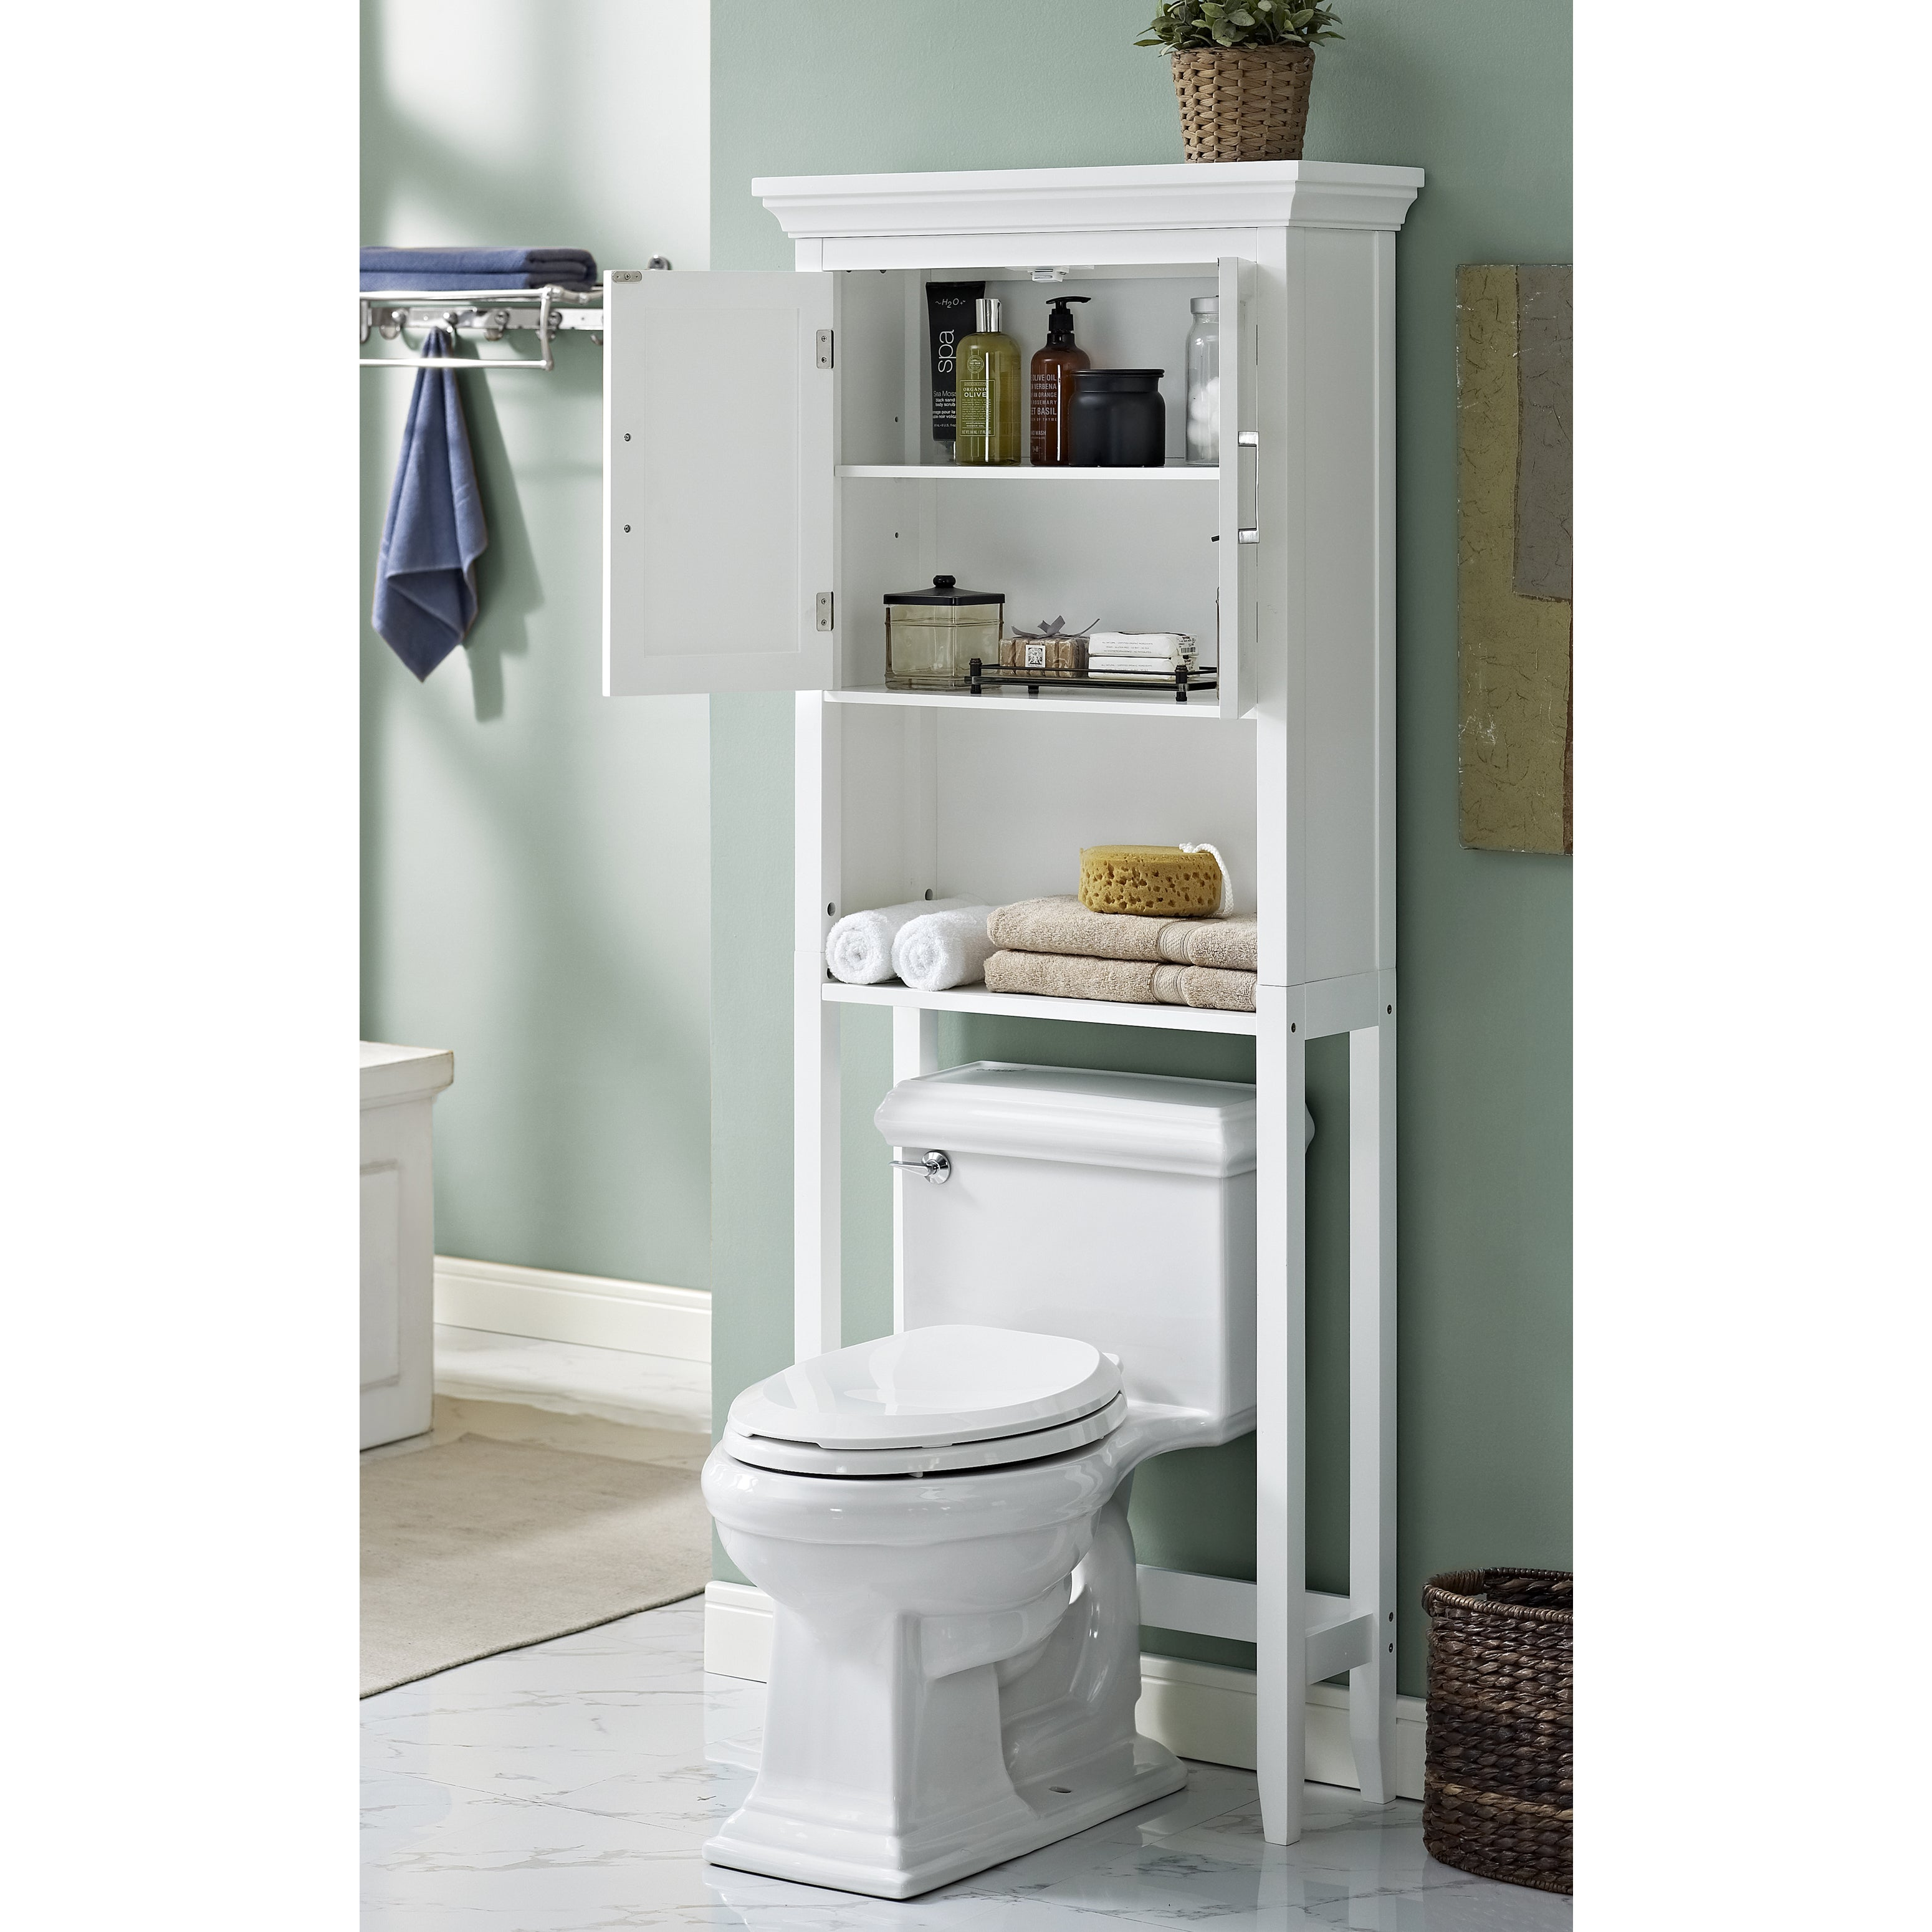 WYNDENHALL Hayes White Bathroom Space Saver Cabinet   Free Shipping Today    Overstock.com   17759916